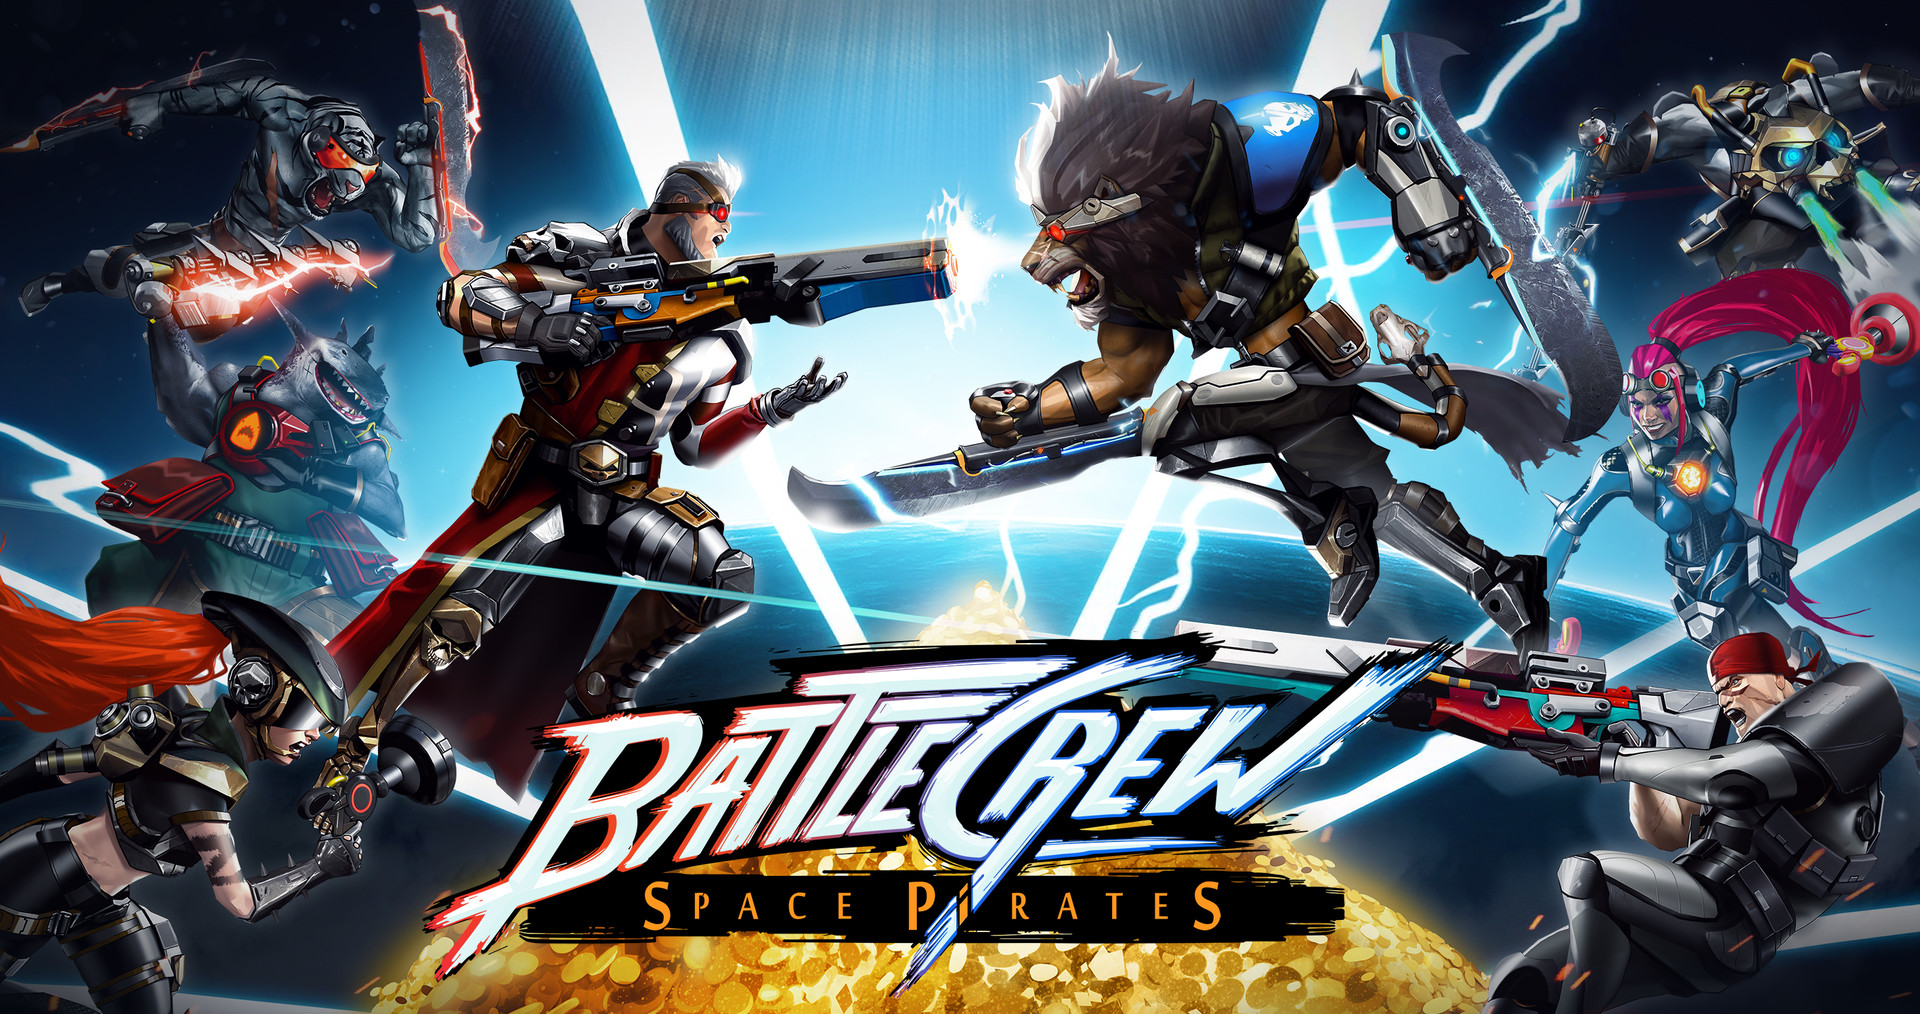 BATTLECREW Space Pirates Now Available on Steam with FREE Version